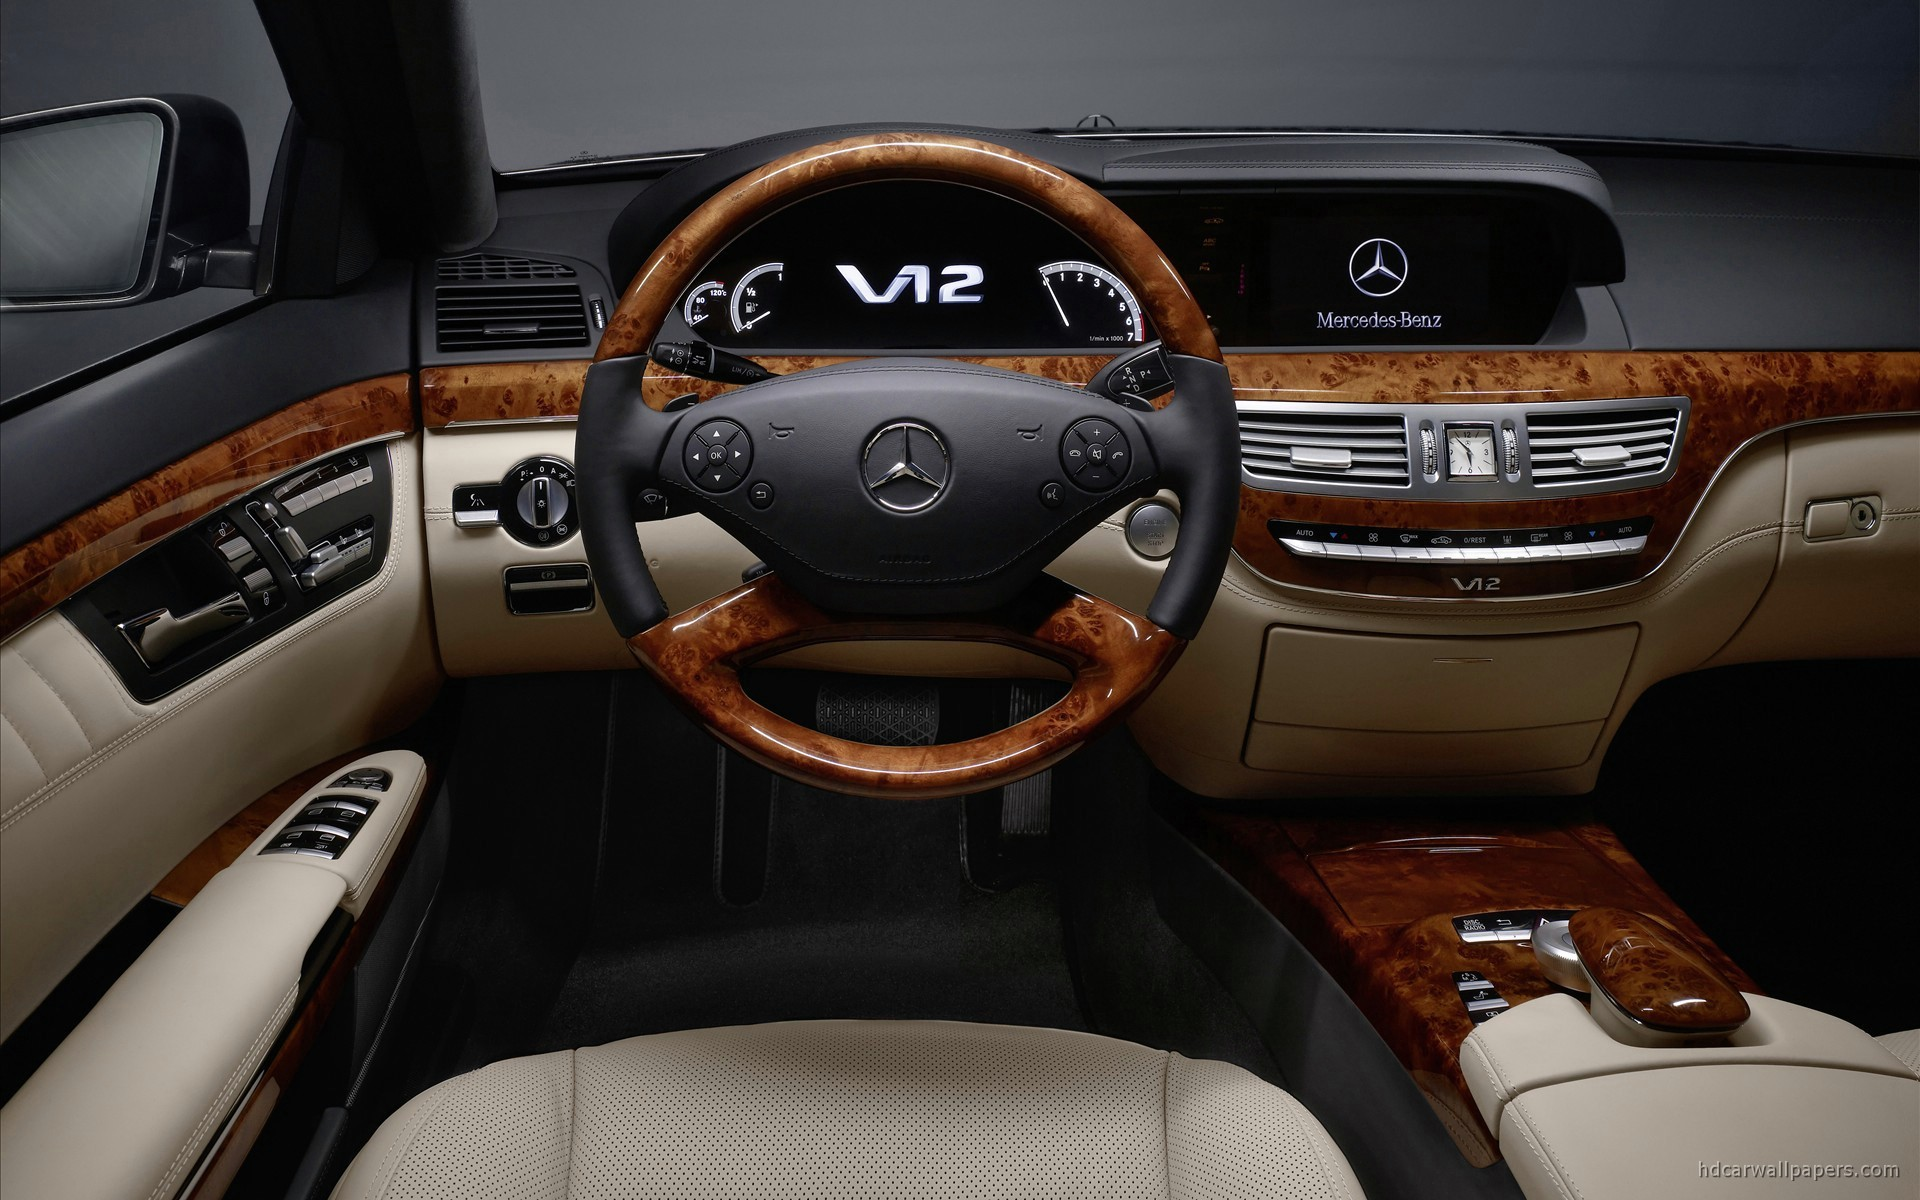 2010 mercedes benz s class interior wallpaper hd car. Black Bedroom Furniture Sets. Home Design Ideas